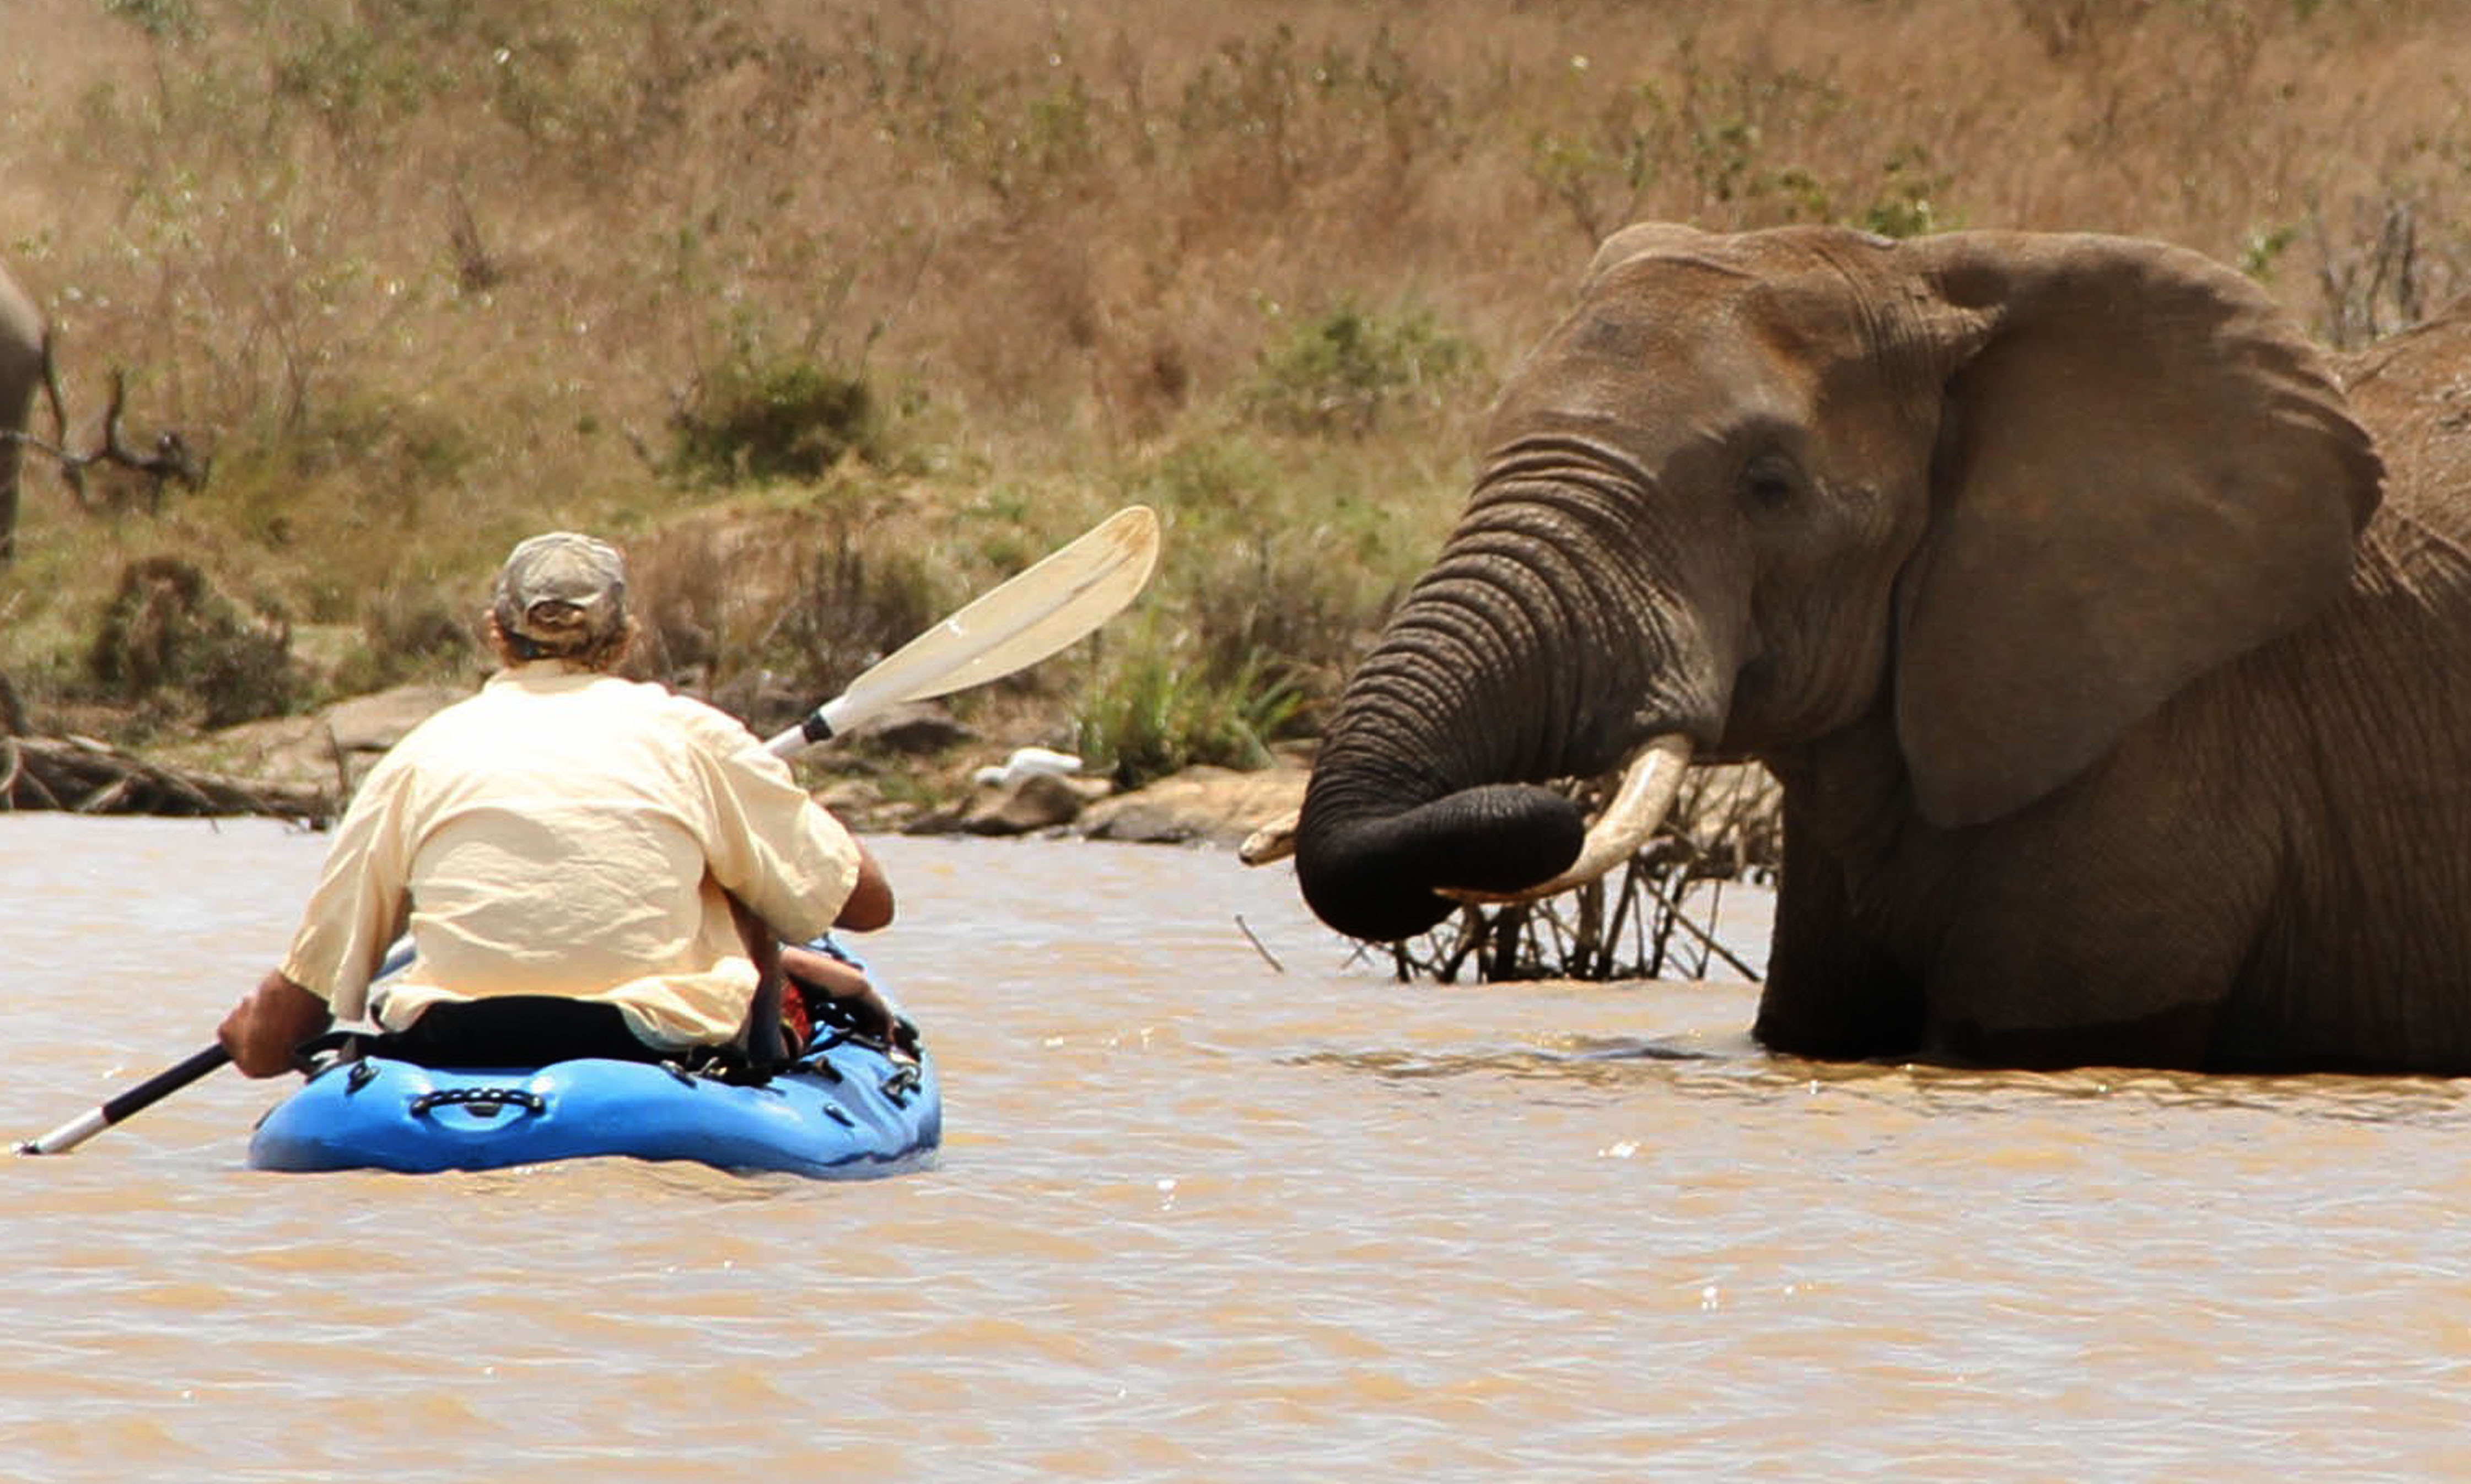 ***MANDATORY BYLINE PIC BY JOSH PERRETT OF EKORIAN.COM/CATERS NEWS - (PICTURED: A kayaker gets a close up view of an elephant at Ekorians Mugie Camp in Kenya. The camp was founded by Donna and Josh Perrett in 2012.) - Tourists had a welcome surprise when they were greeted by ELEPHANTS while kayaking. The holidaymakers were promised a magical experience at a private eco camp in Northern Laikipia, Kenya - and the company certainly delivered! The kayakers were able to get up close and personal with the giant mammals as they played in the water. At one point, three elephants crowded round a very excited couple, while a baby elephant clung onto its back. SEE CATERS COPY.